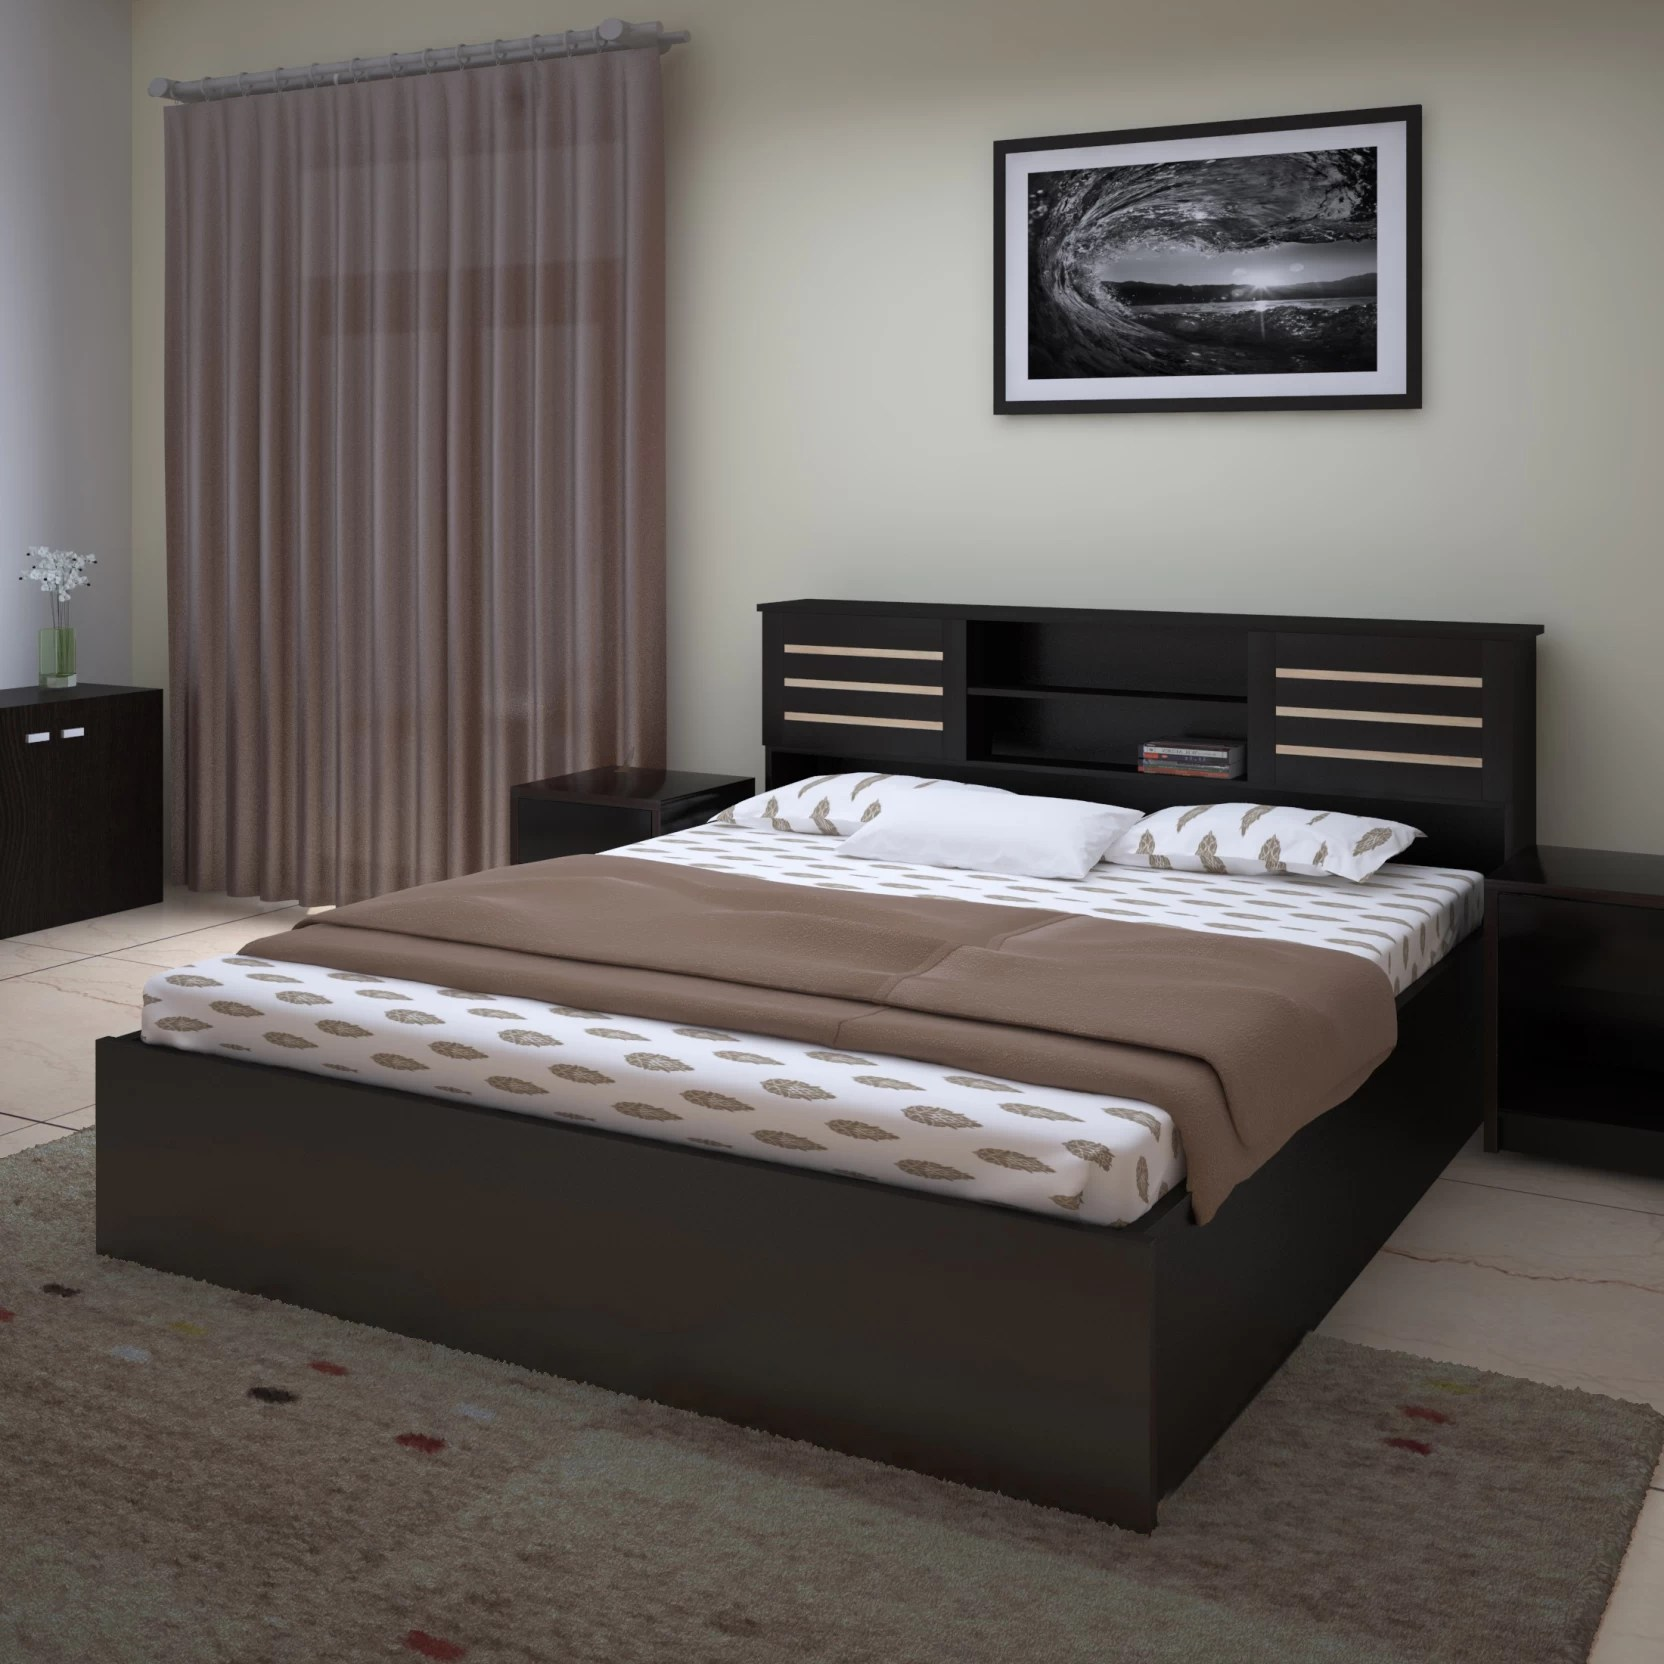 Single Bed Price Perfect Homes By Flipkart Waltz Queen Bed With Storage